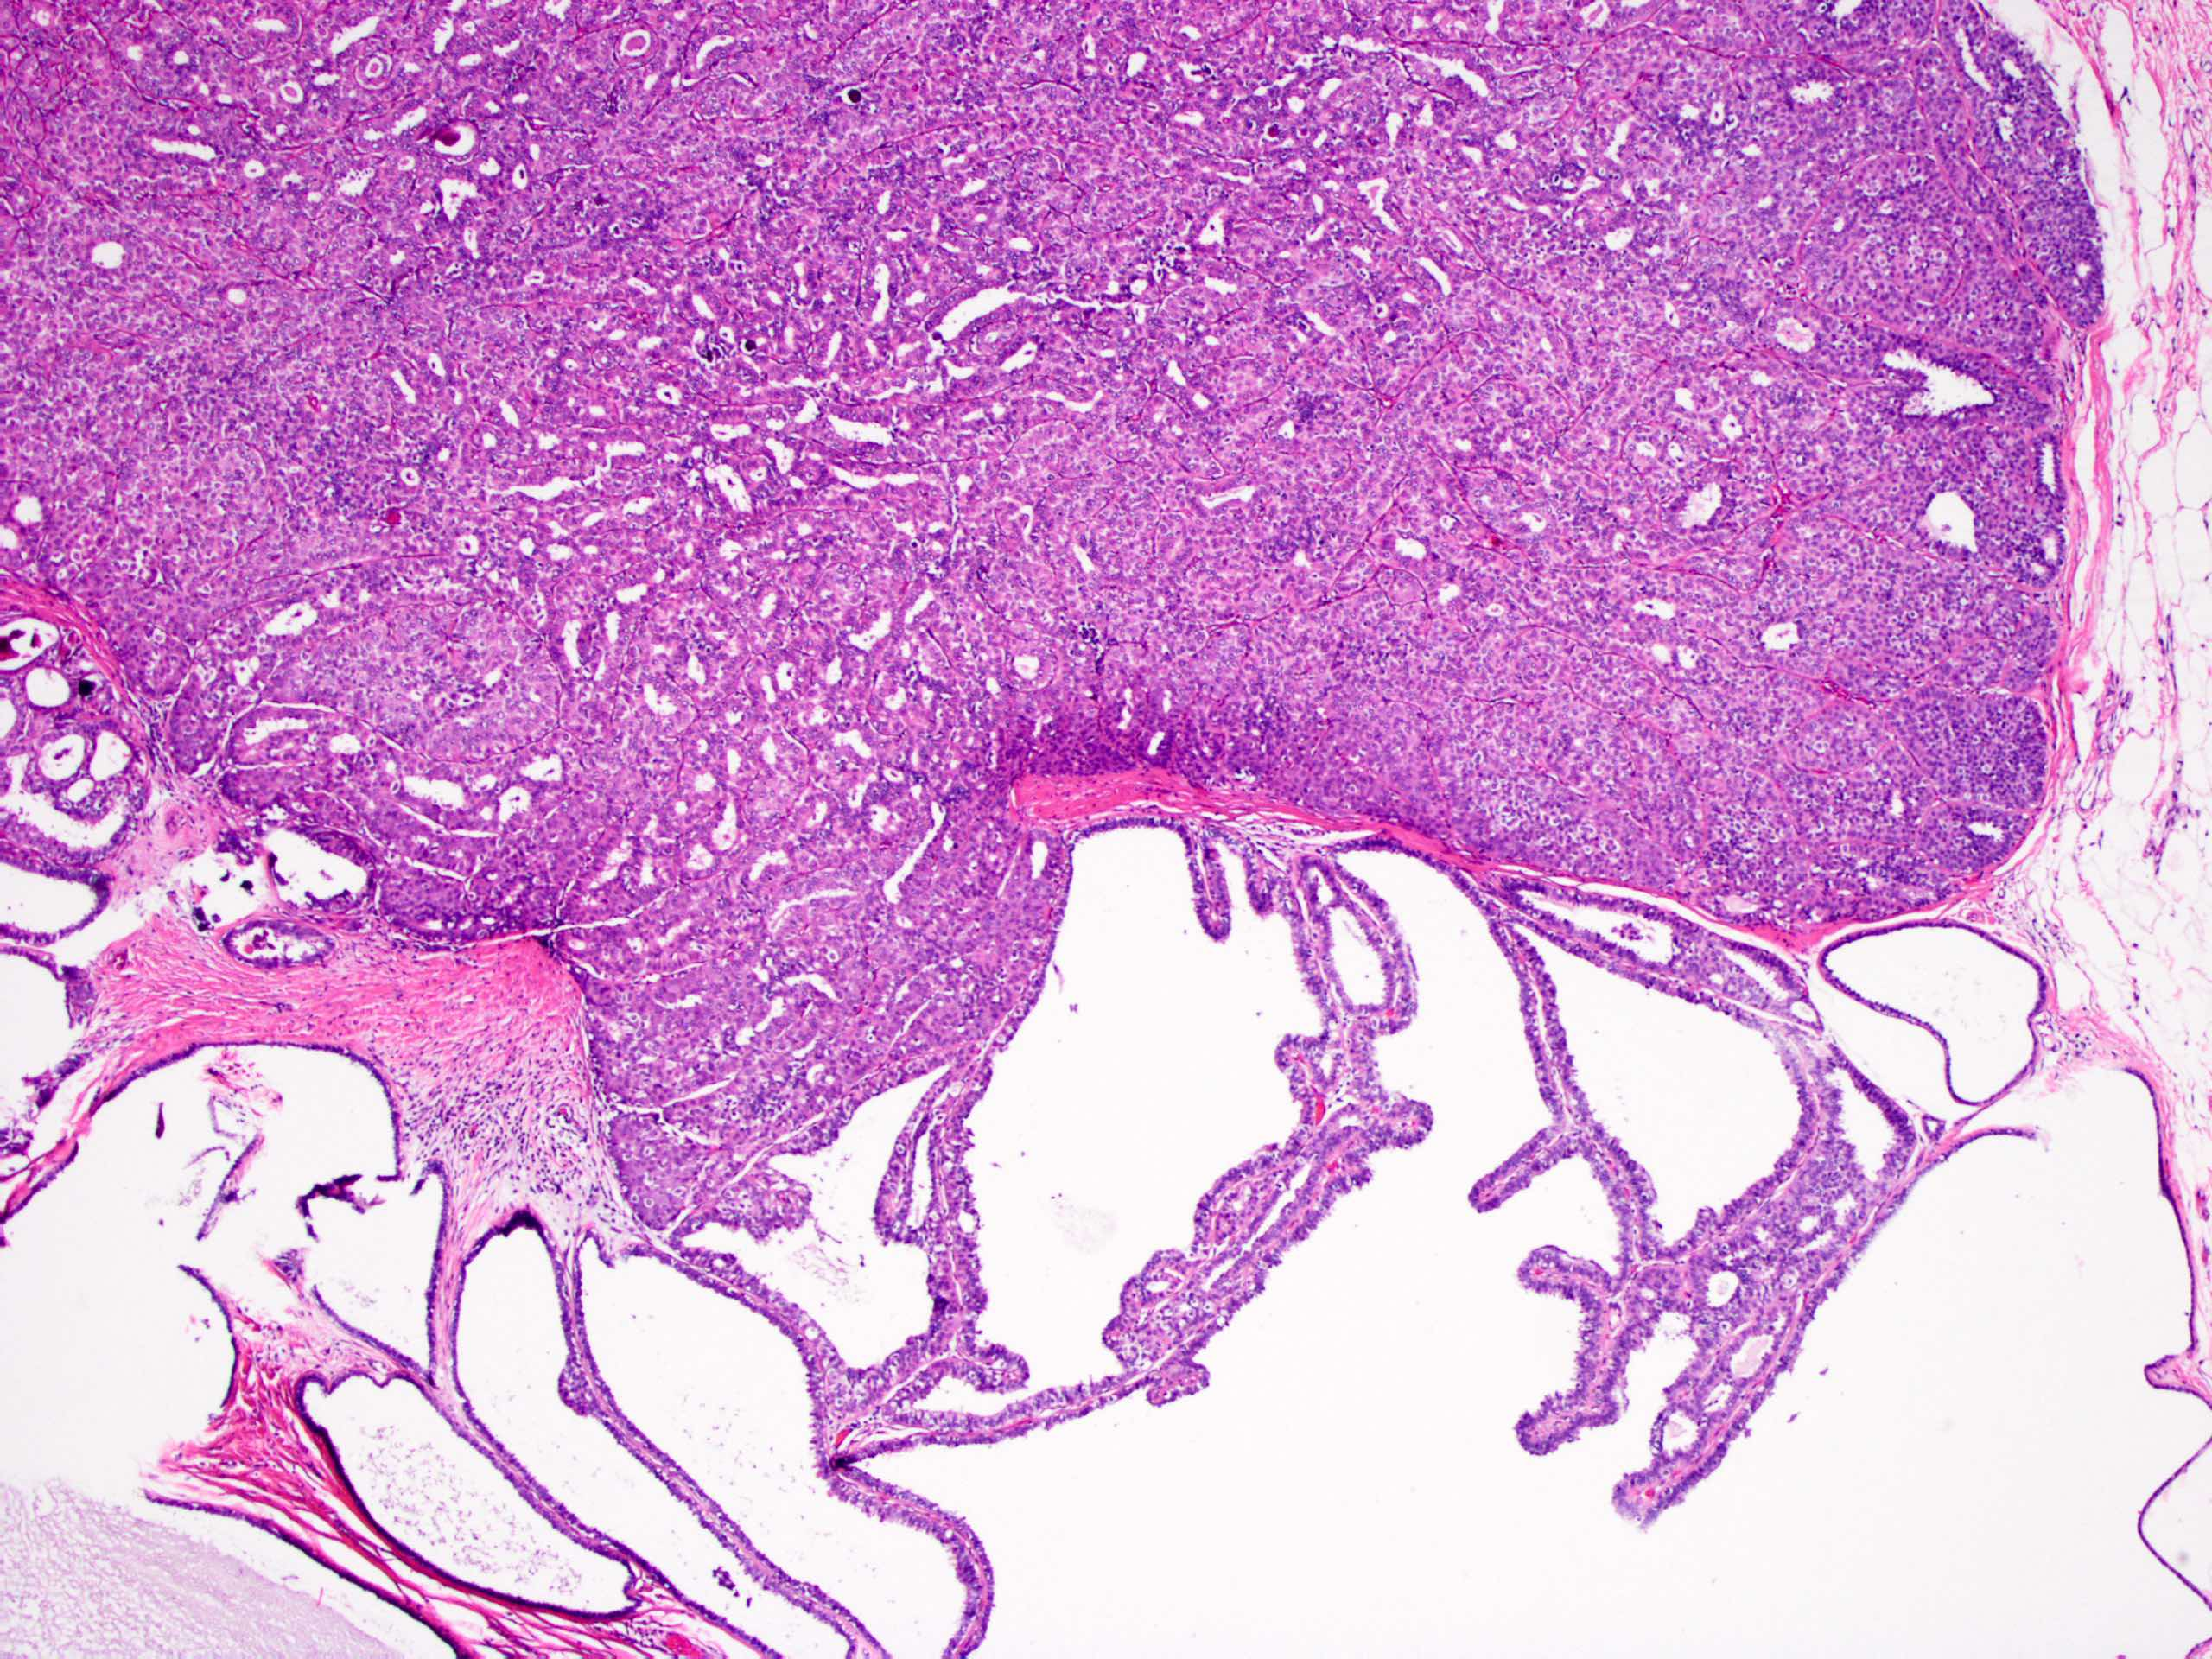 intraductalis papilloma dcis